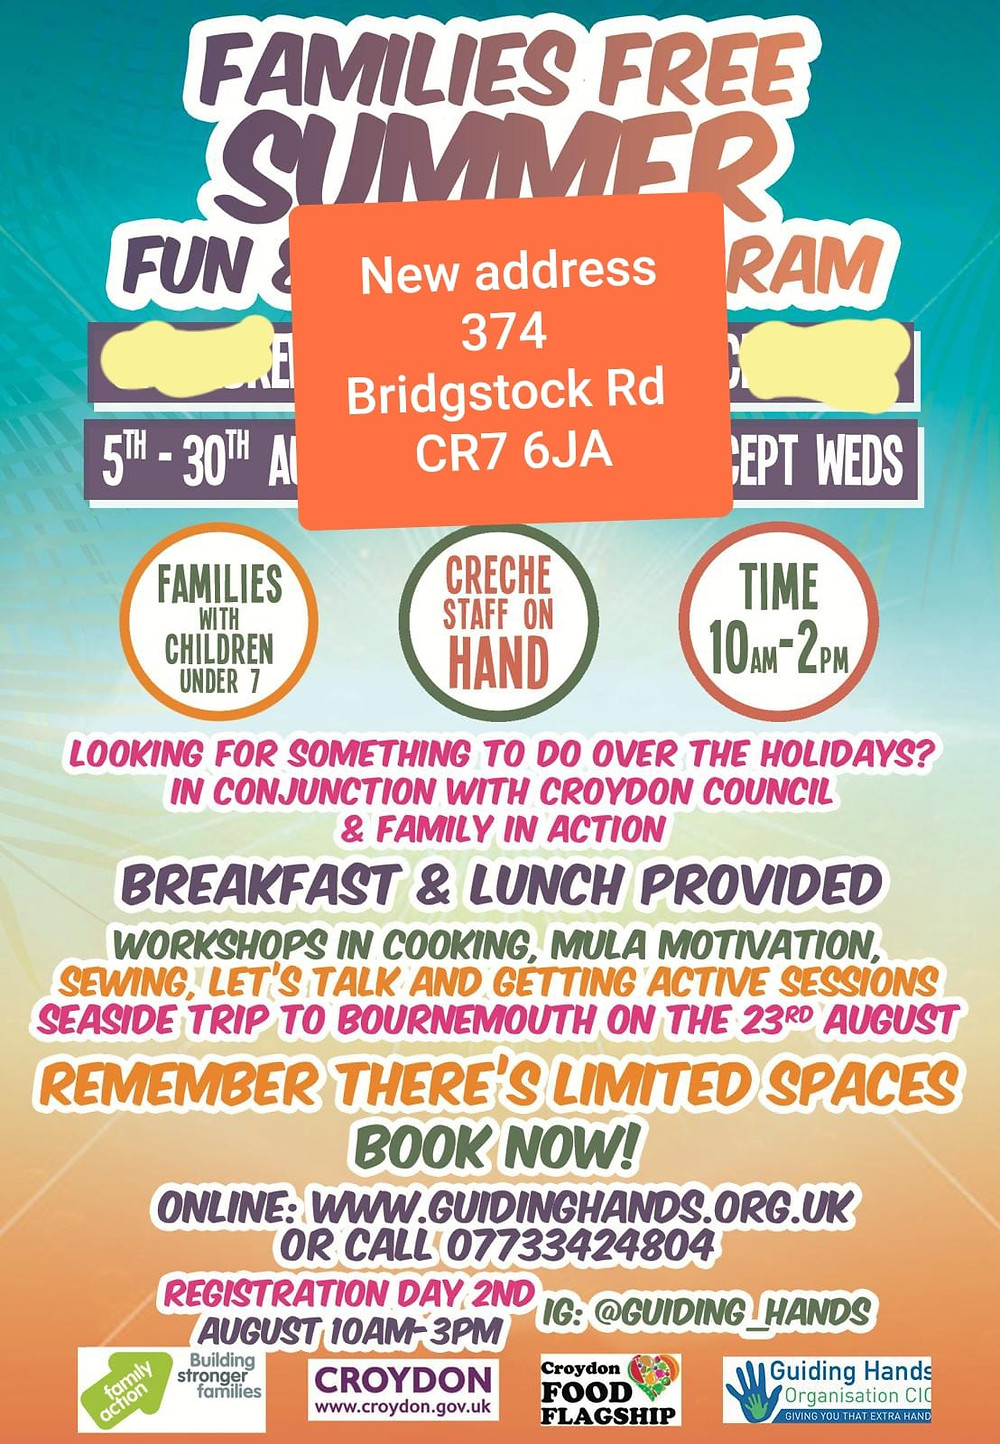 Free Summer Holiday Program for families with children 7 and under.